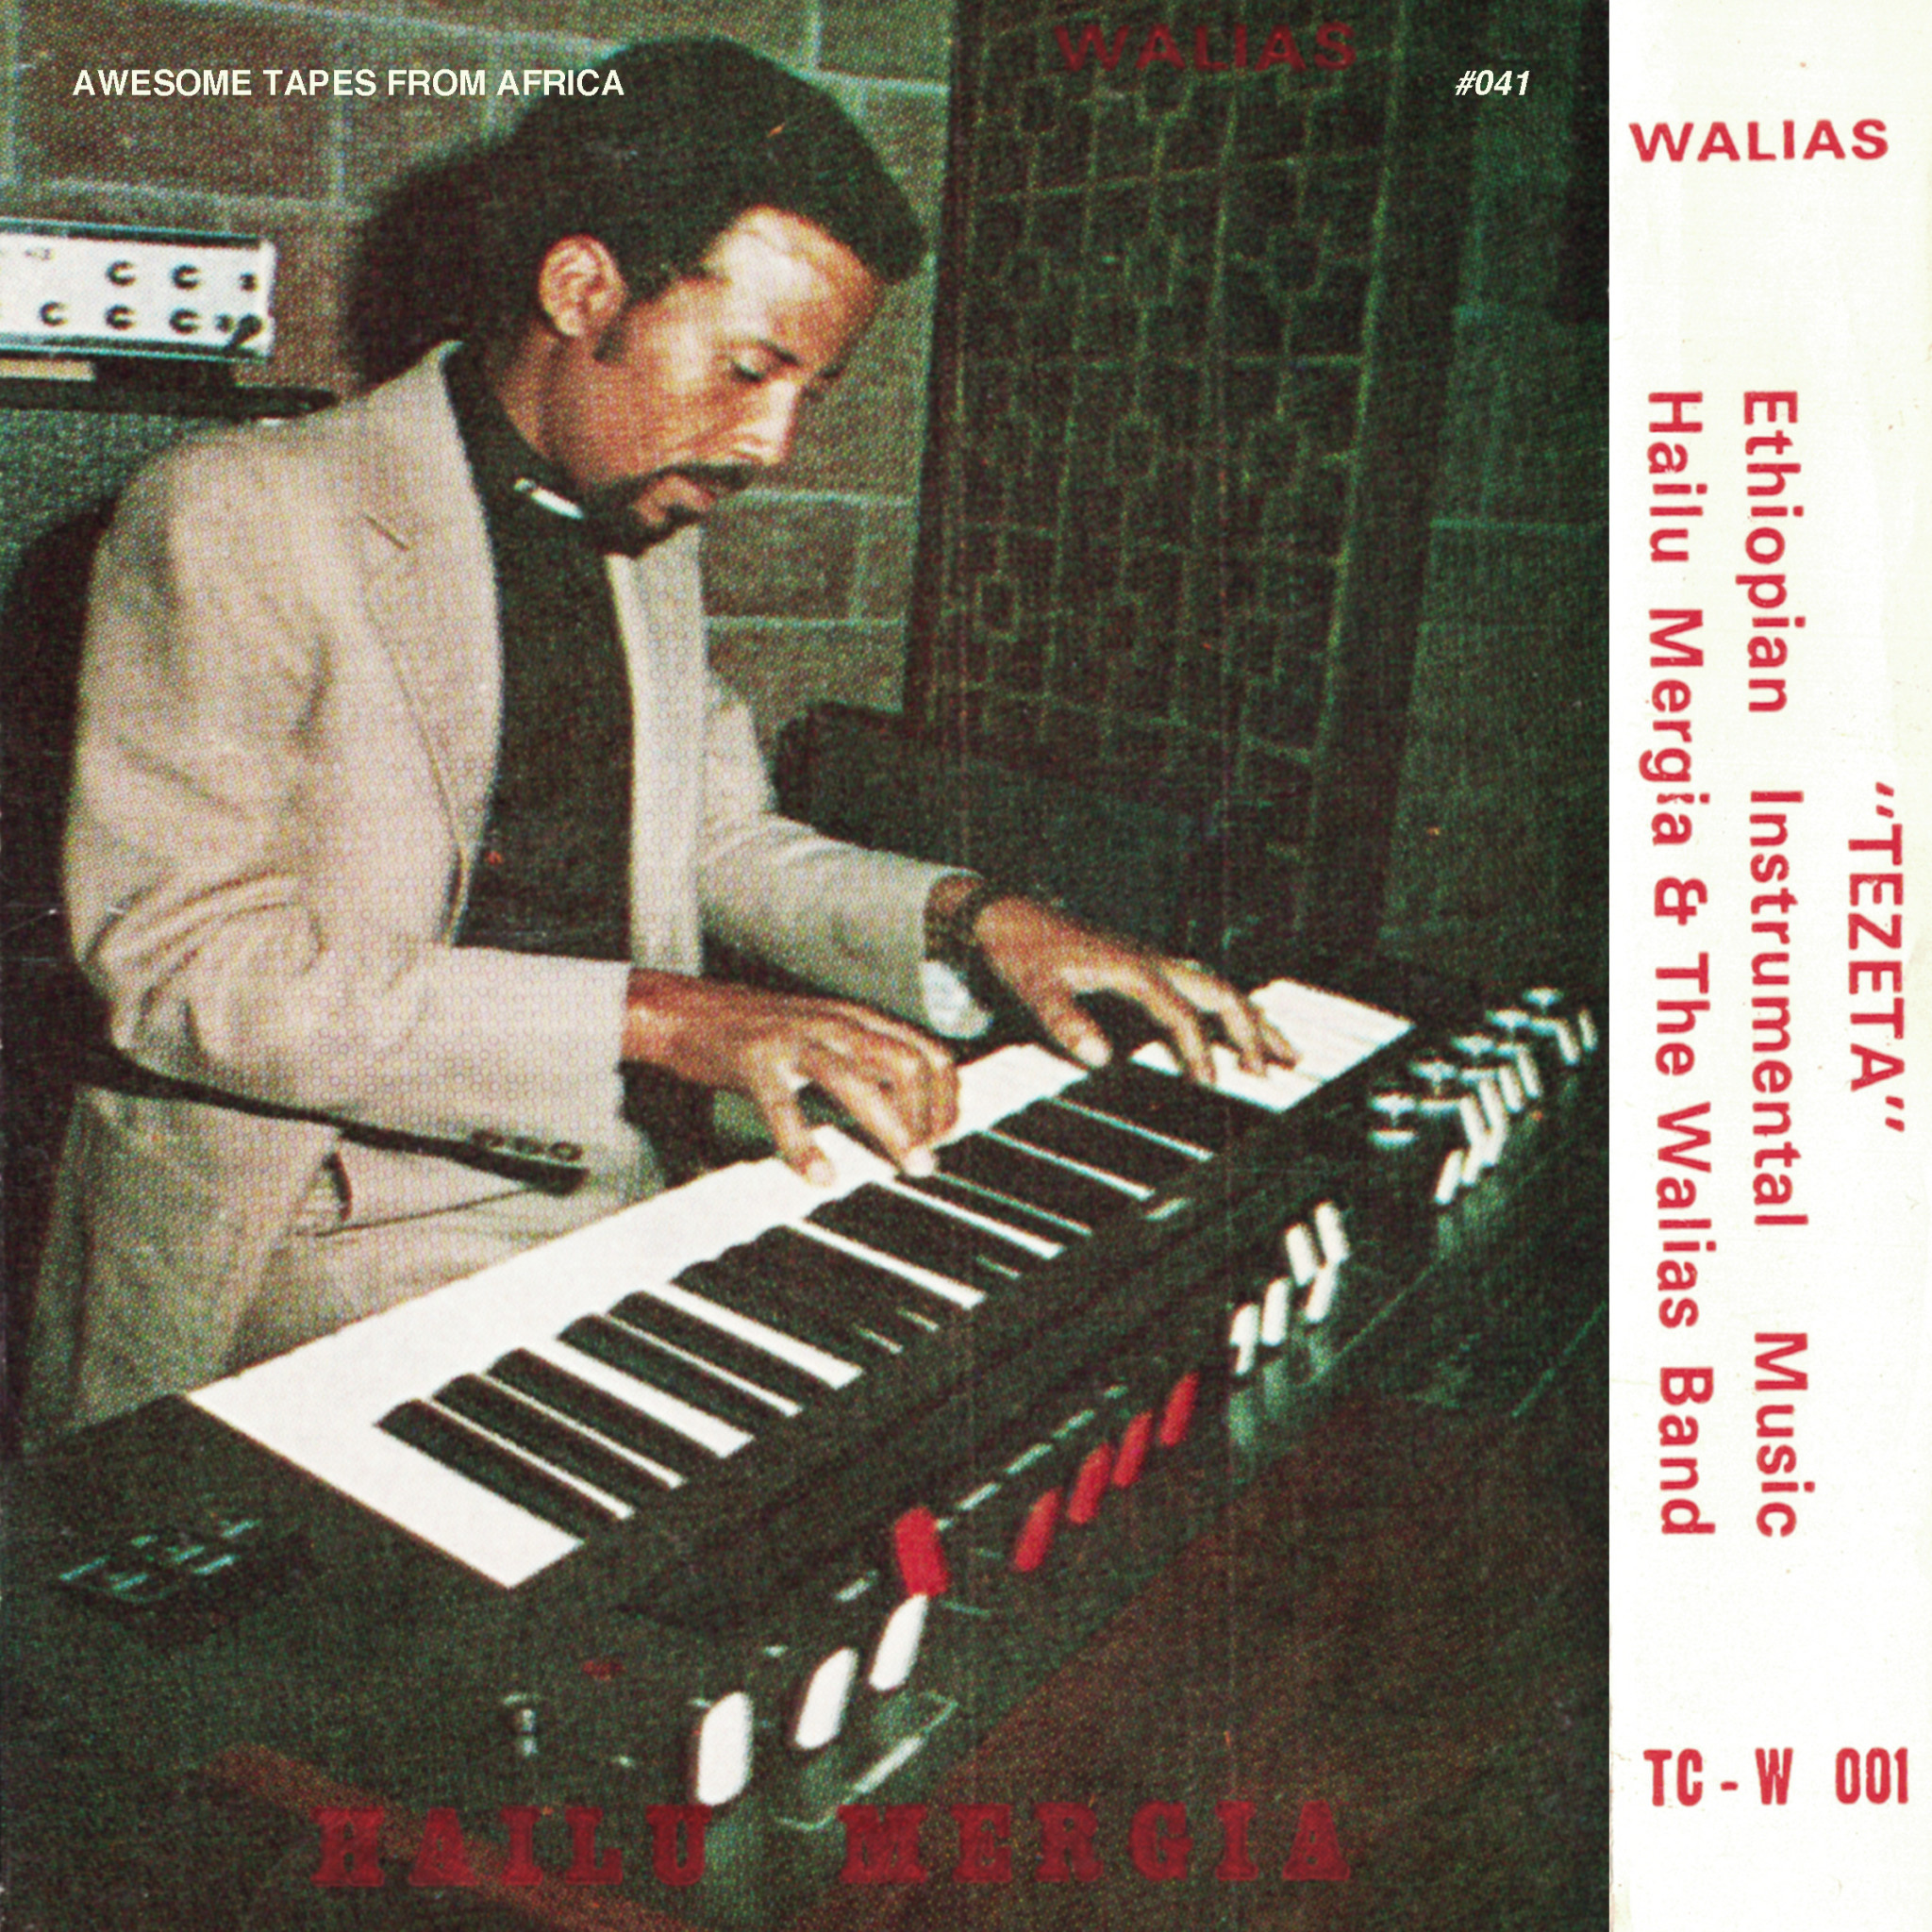 Awesome Tapes From Africa Hailu Mergia and the Walias Band – Tezeta